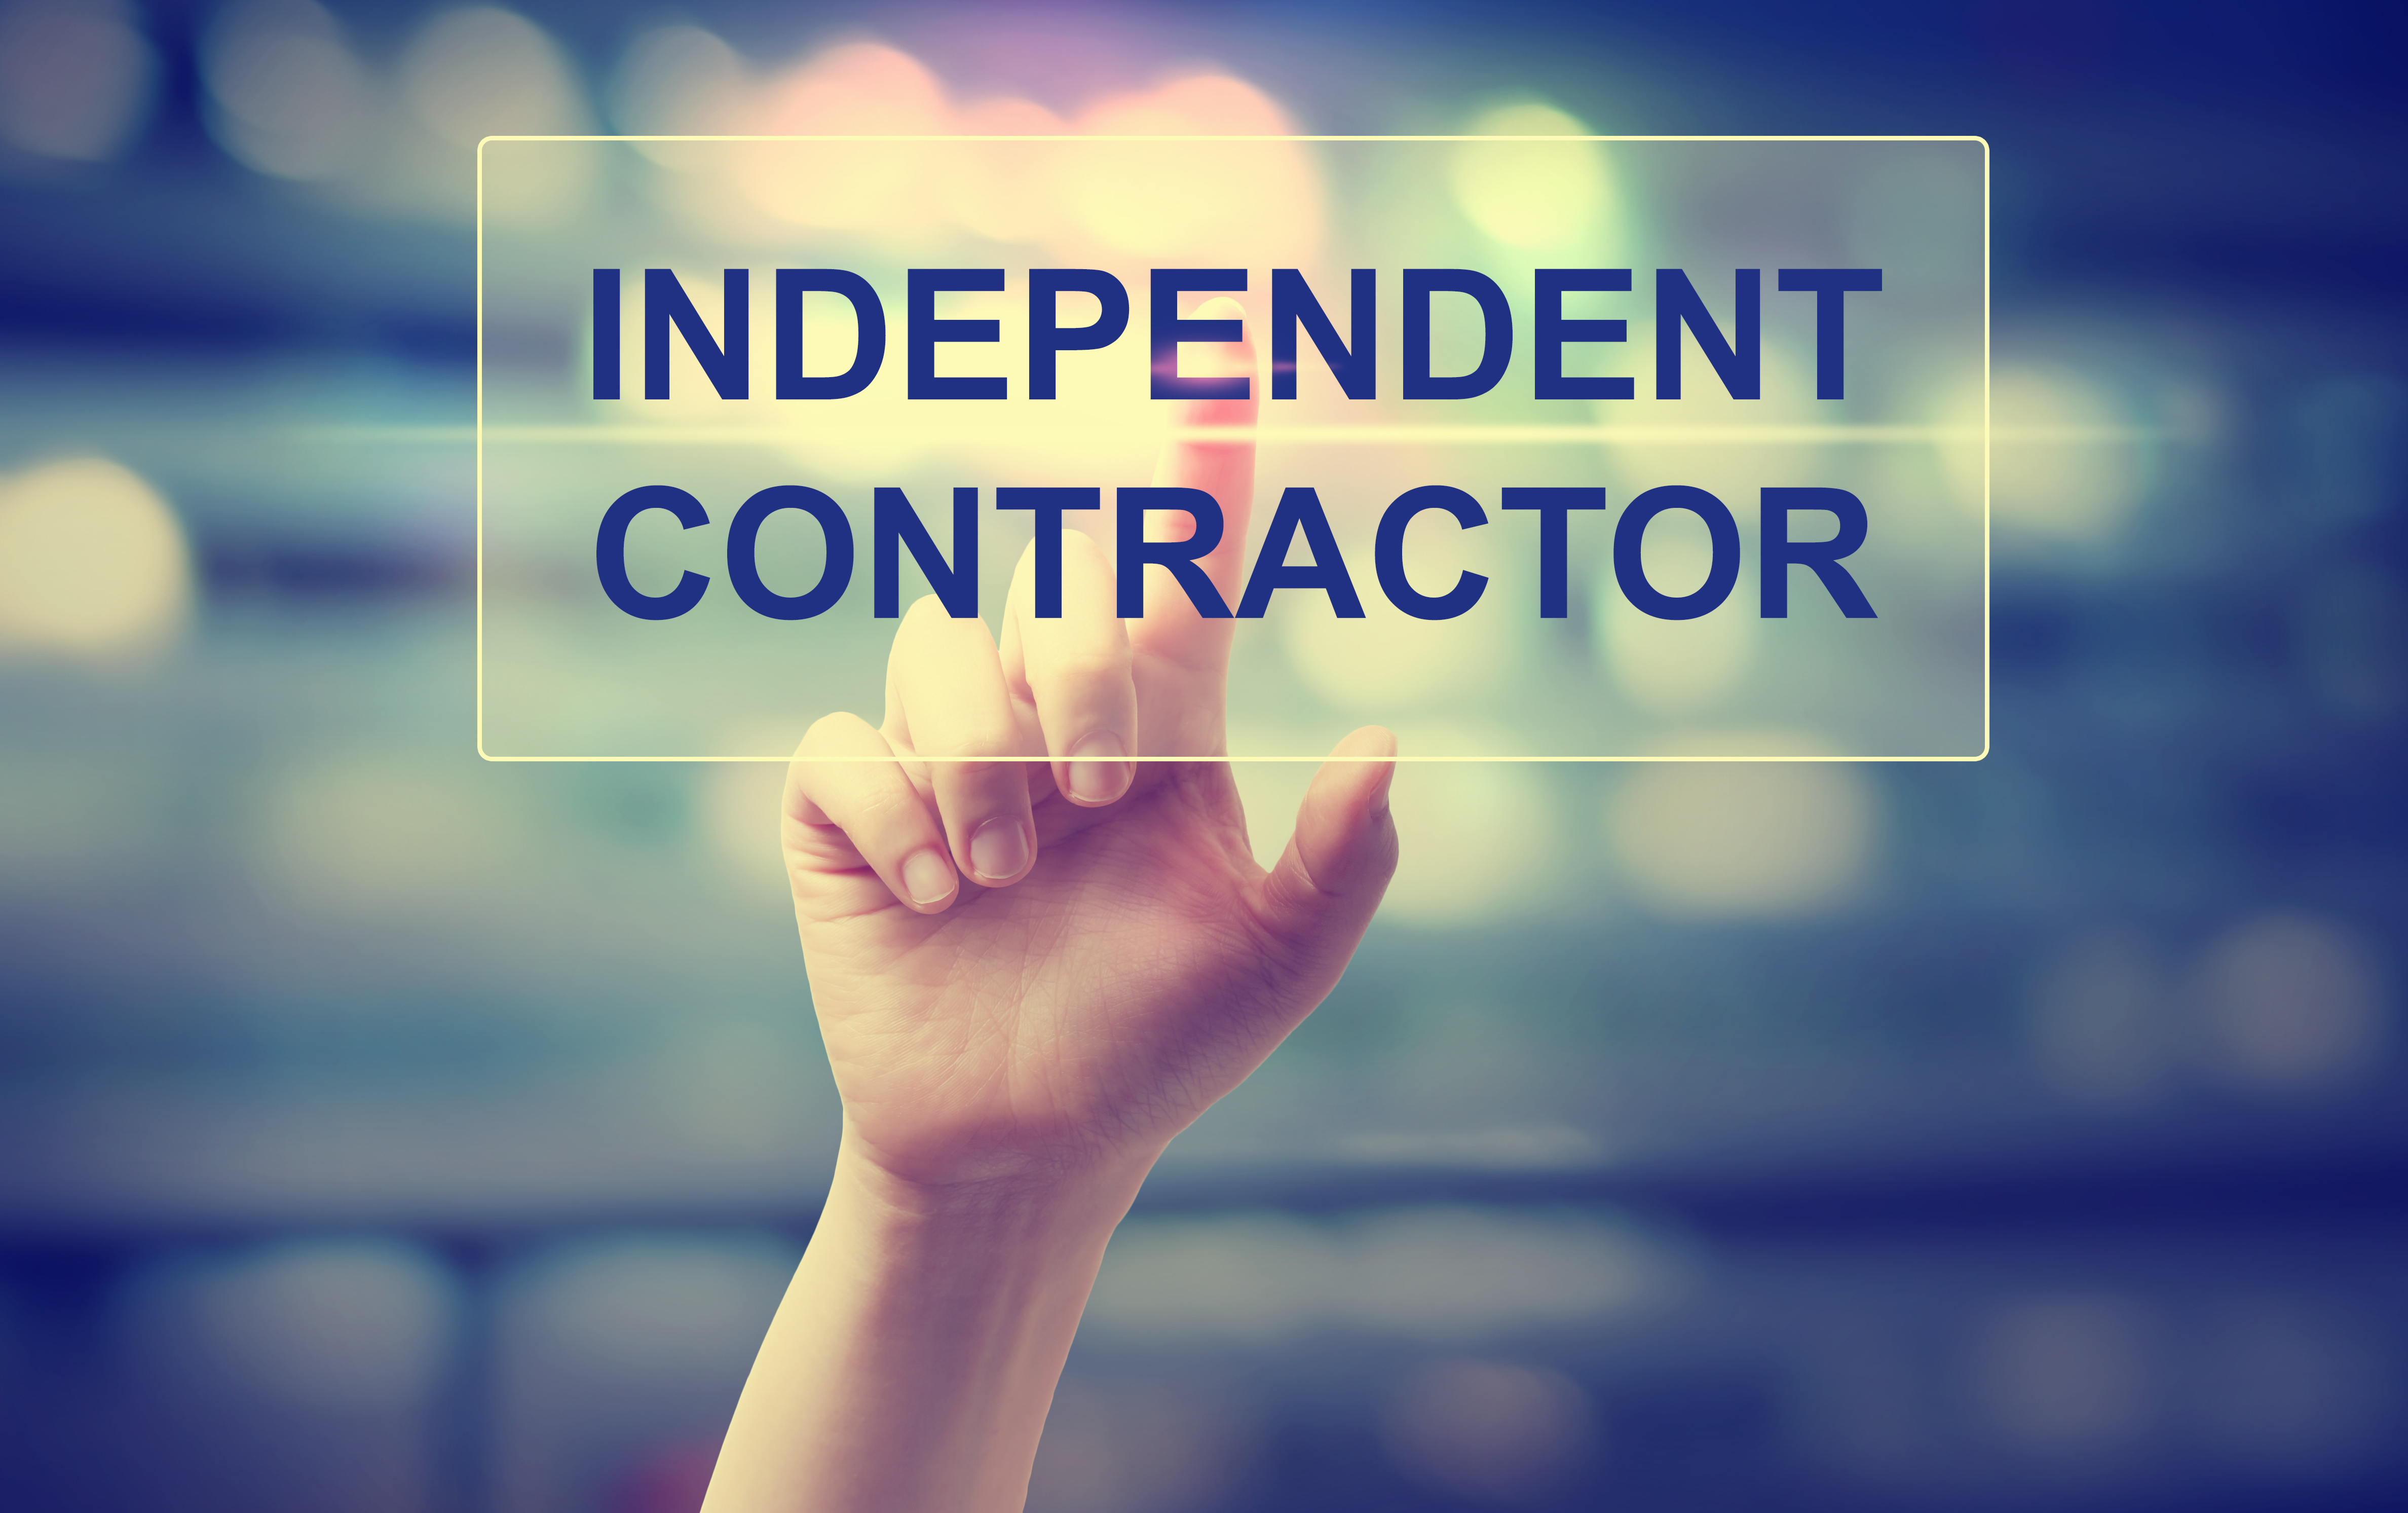 Independent Contractor concept with hand